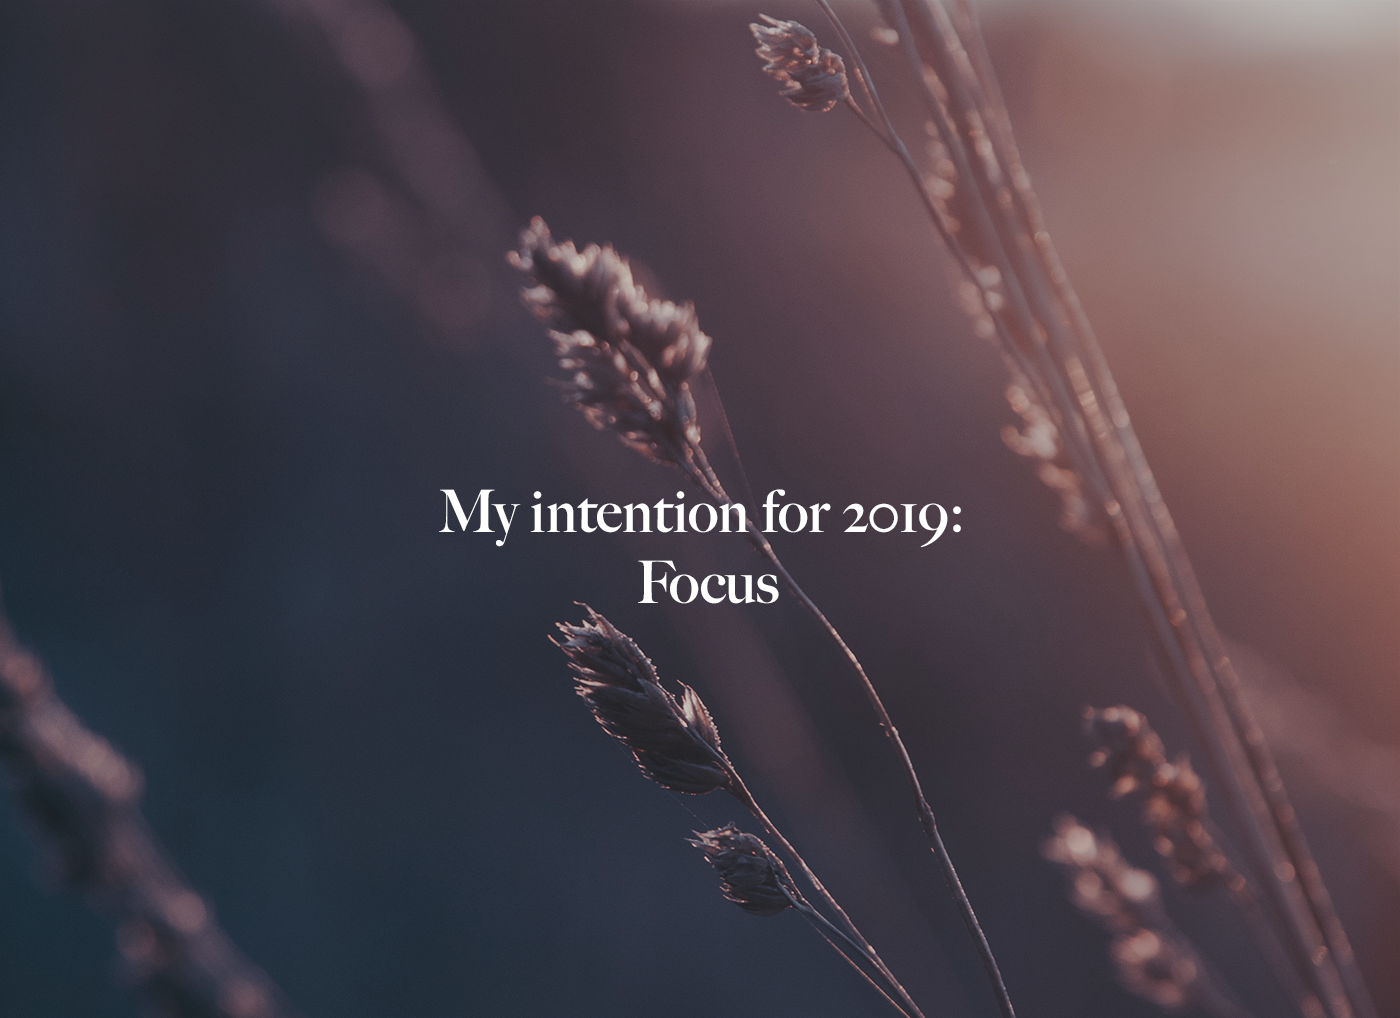 intention 2019 focus.png